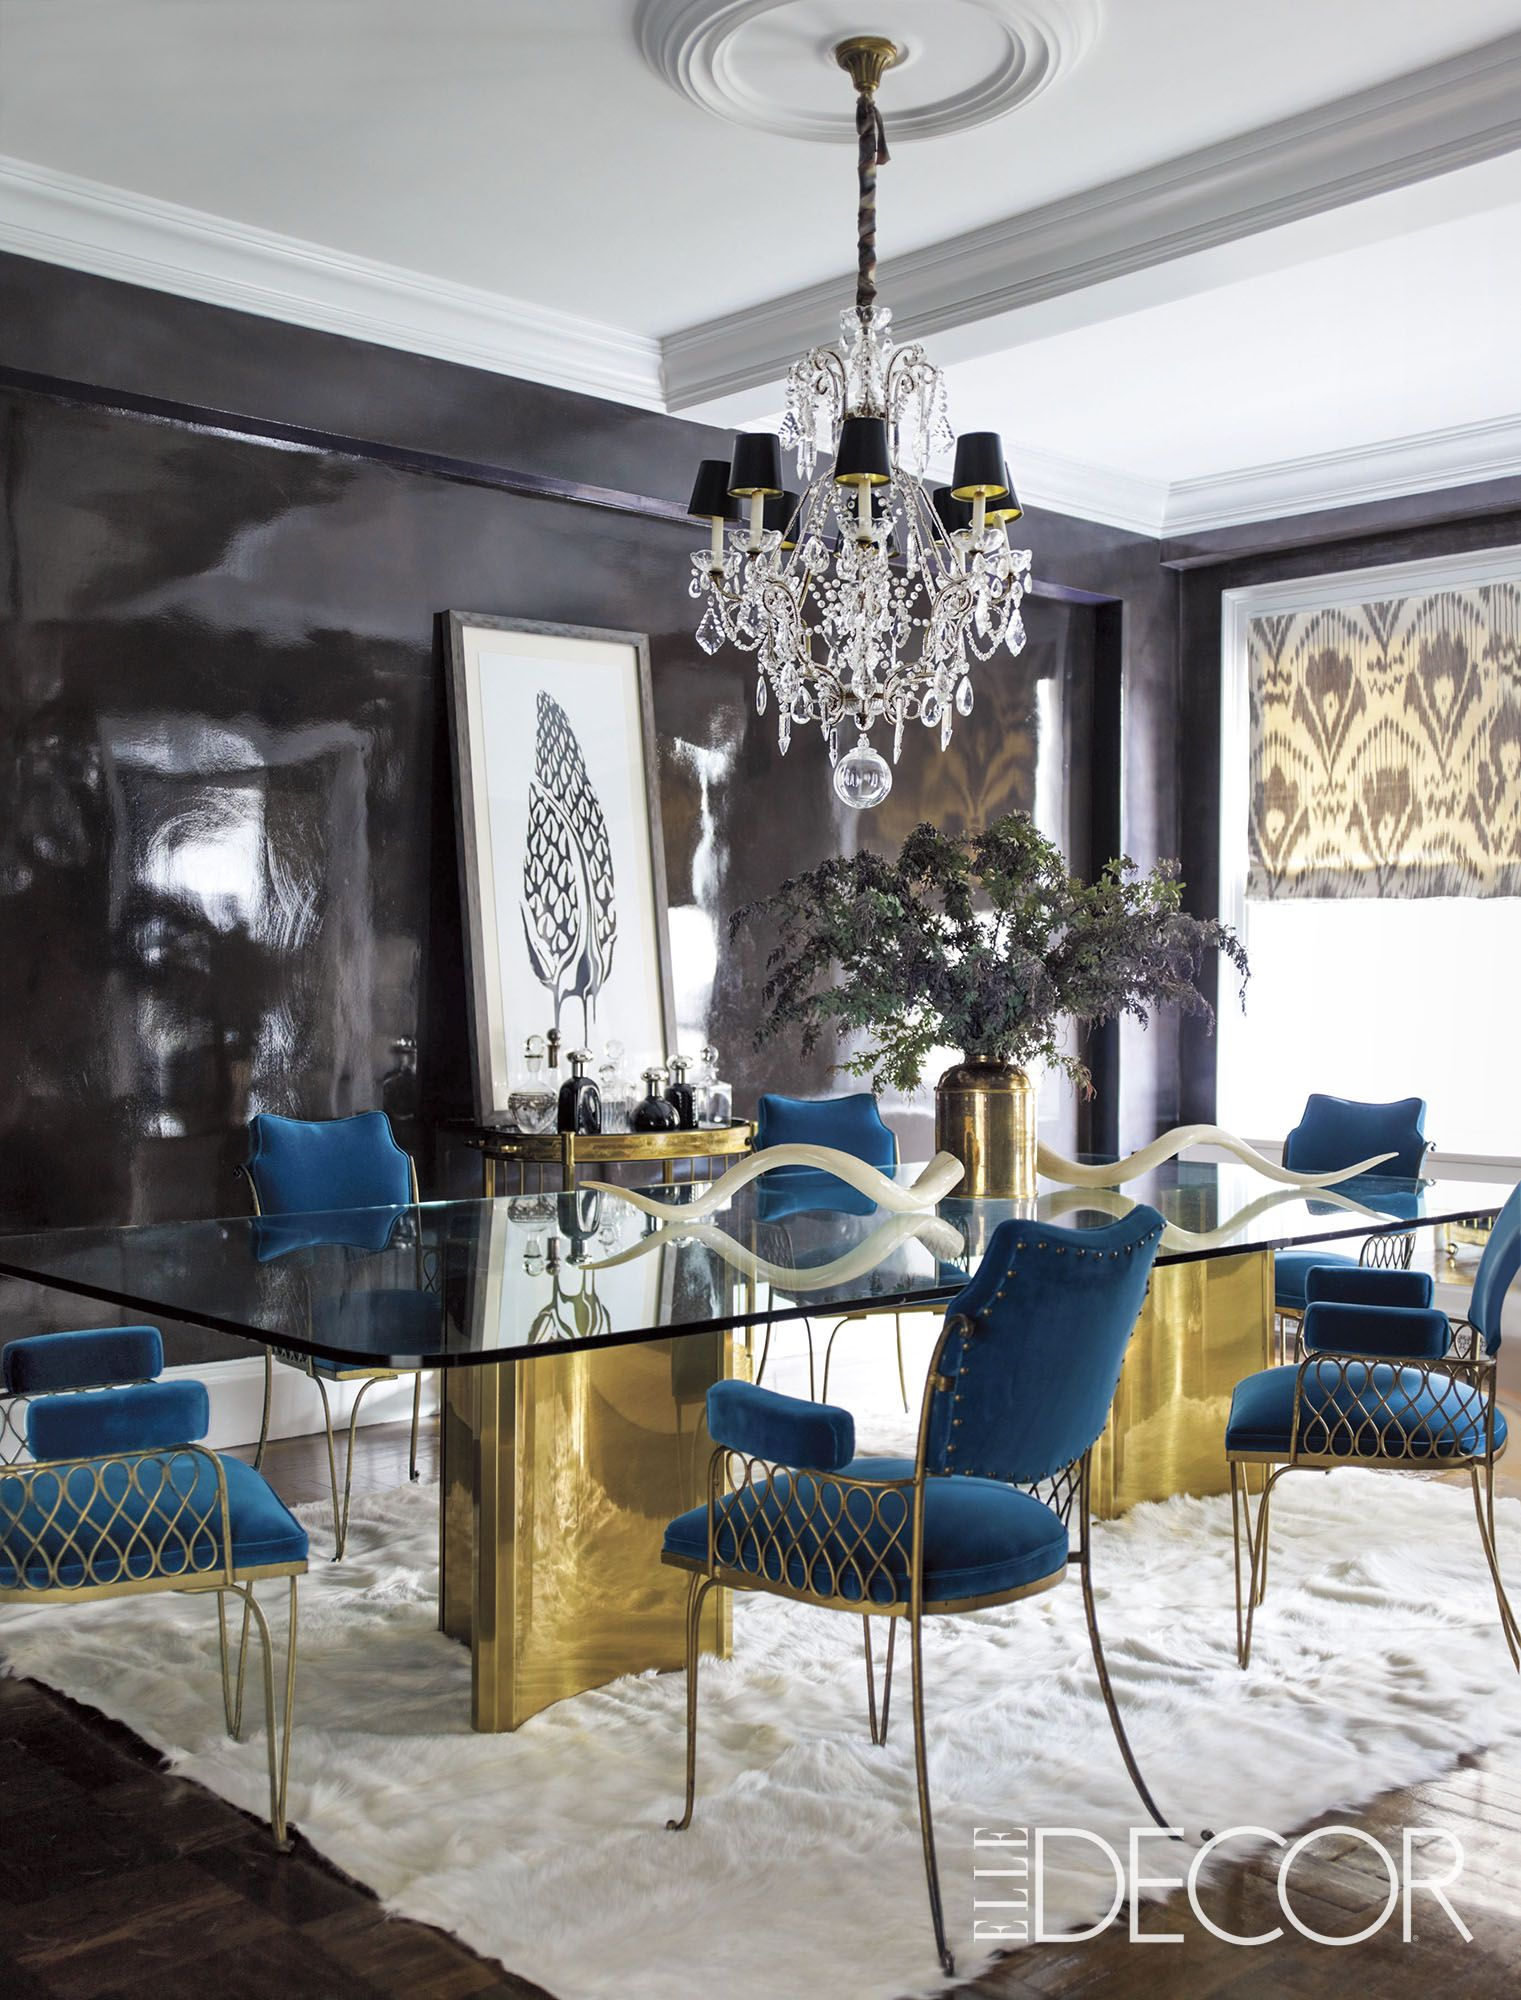 Image Lighting Ideas Dining Room Elle Decor